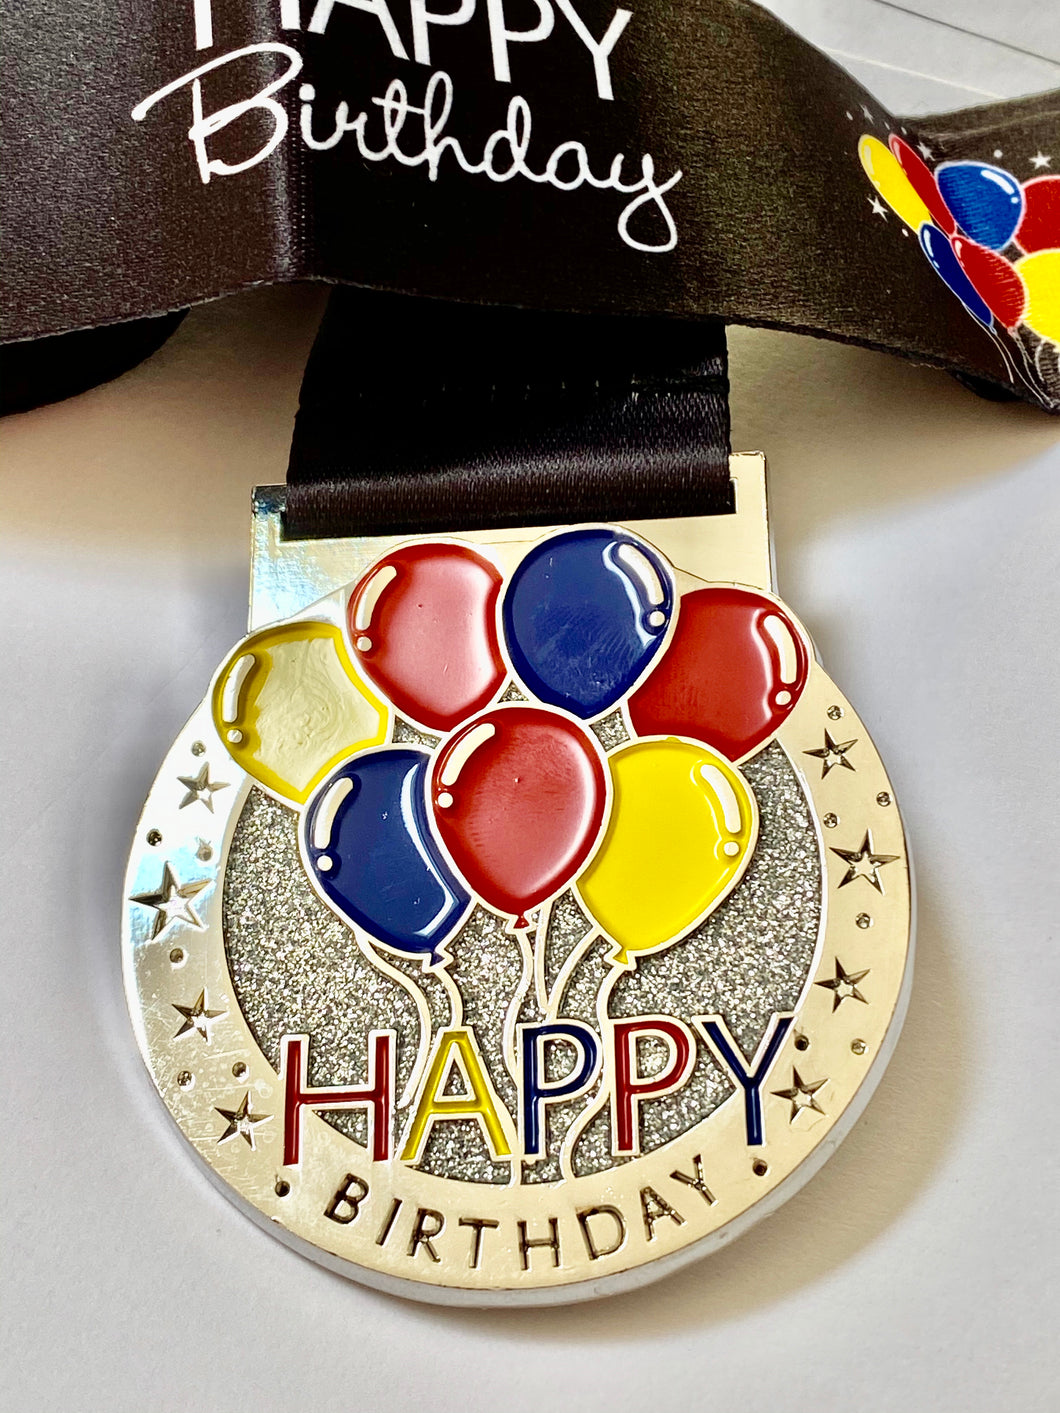 Birthday Celebration Challenge Medal